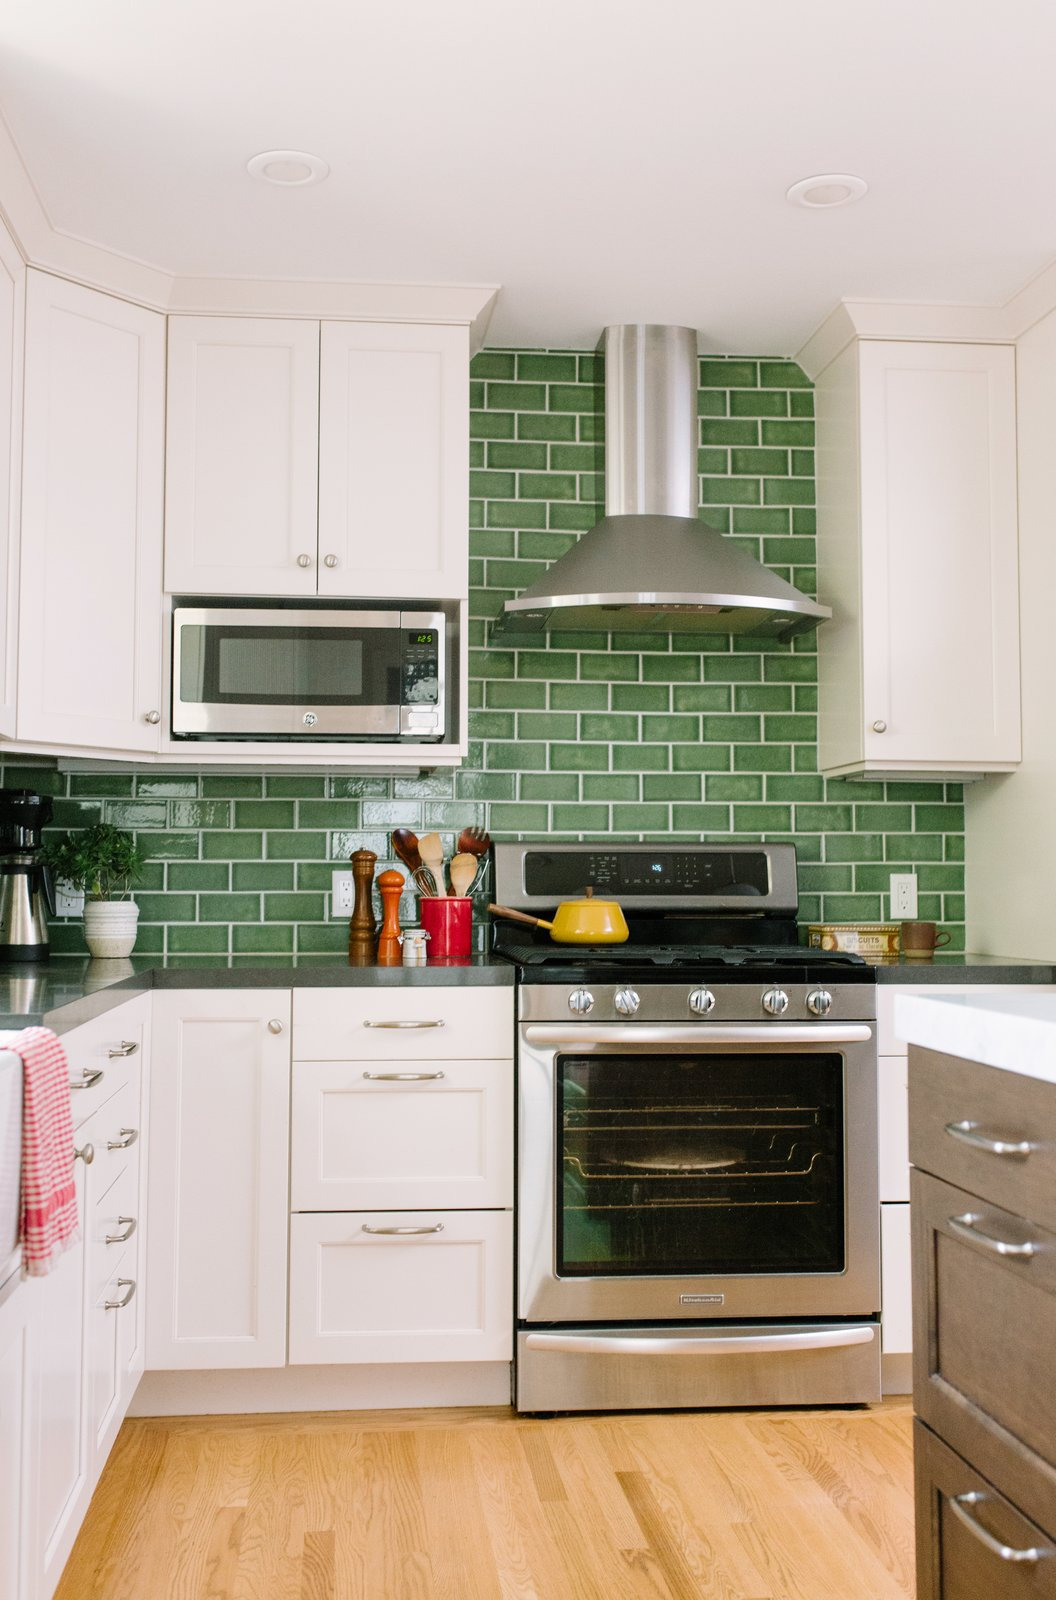 classic subway tile backsplash